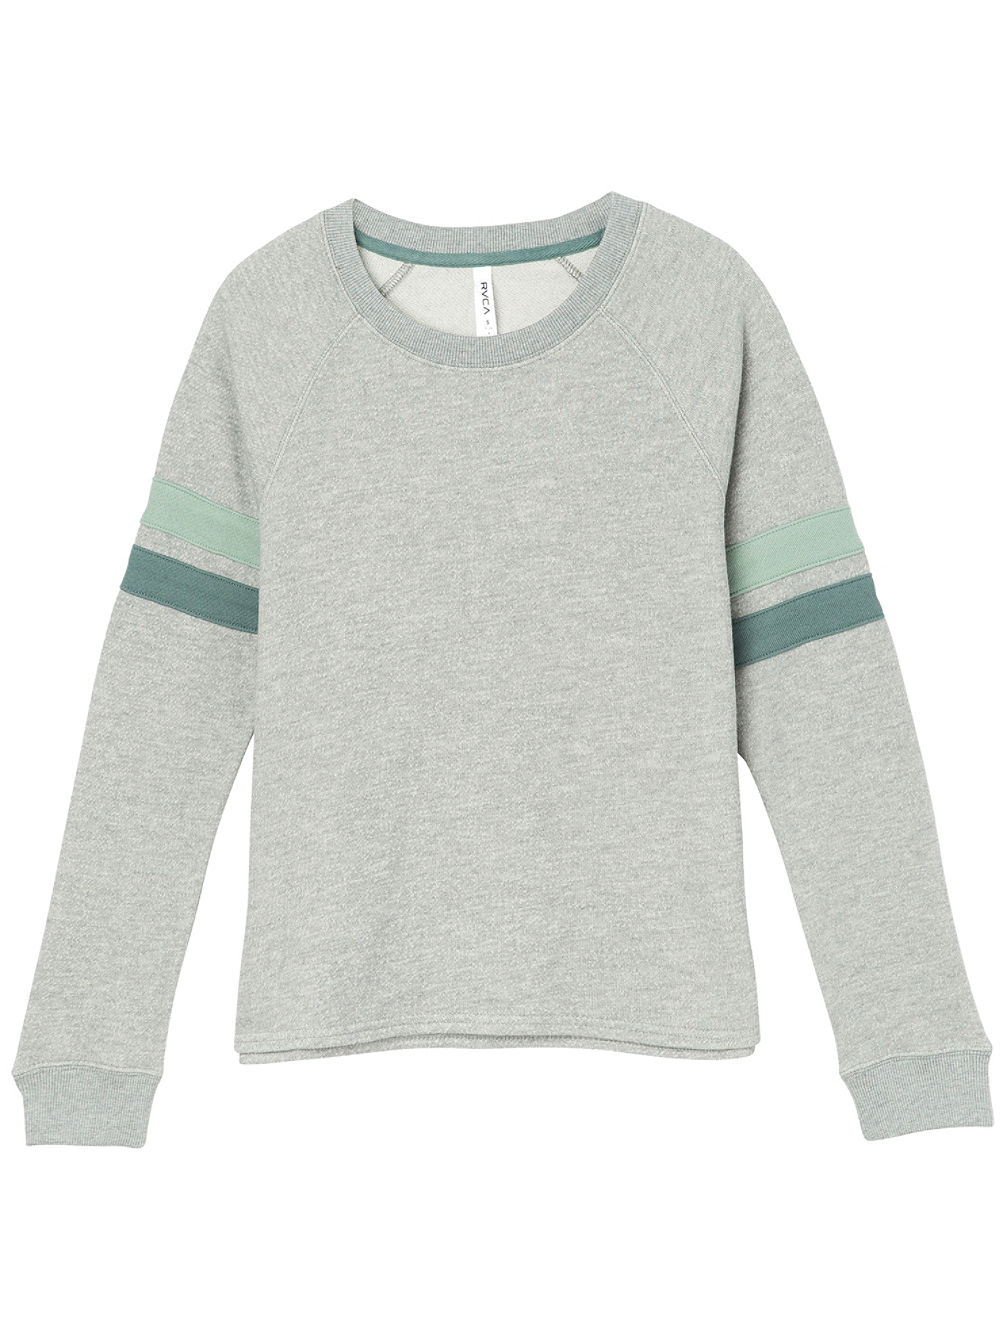 At Ease Sweater